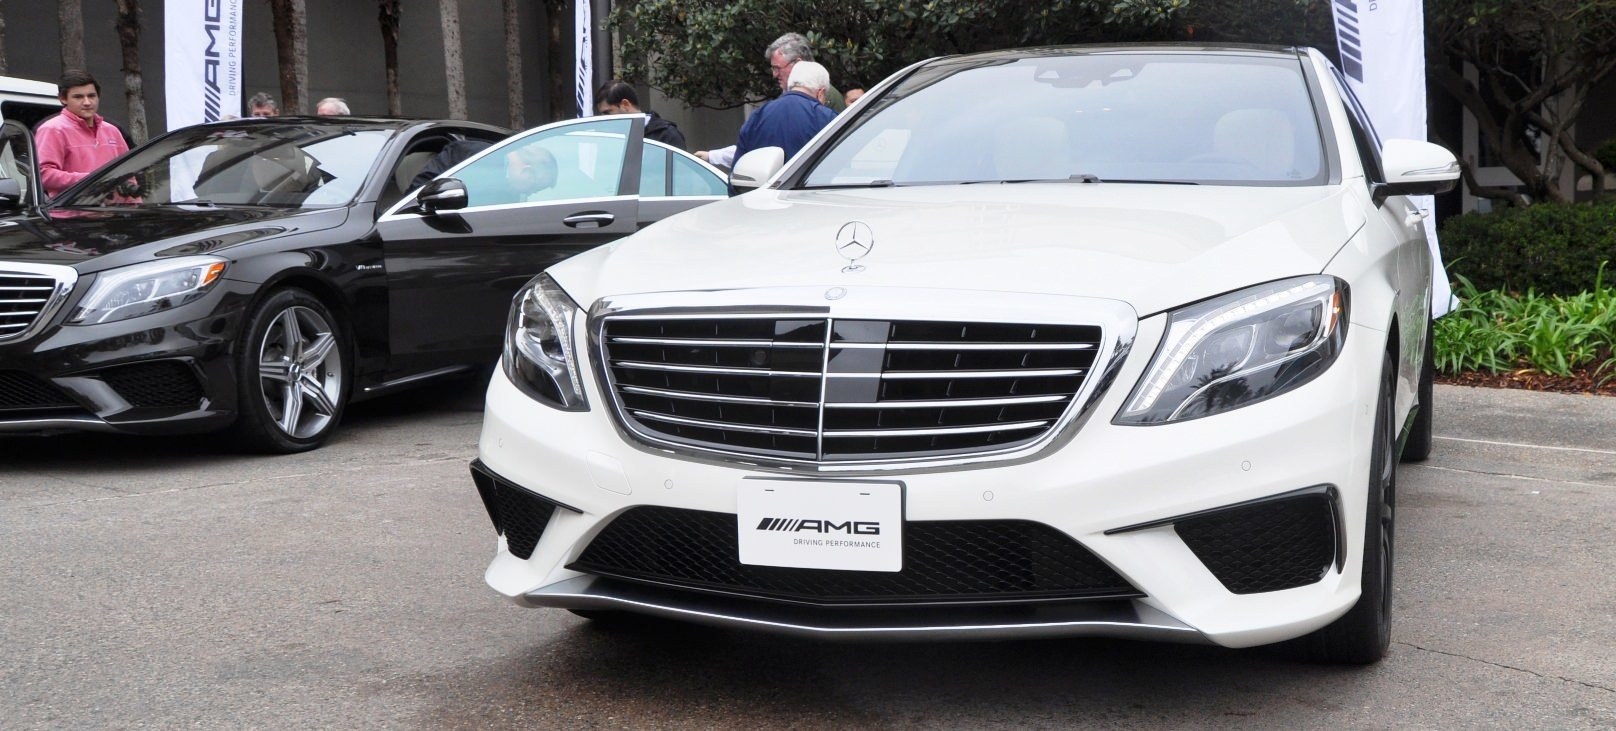 2014 mercedes benz s65 amg and s63 amg for Is a mercedes benz a good car